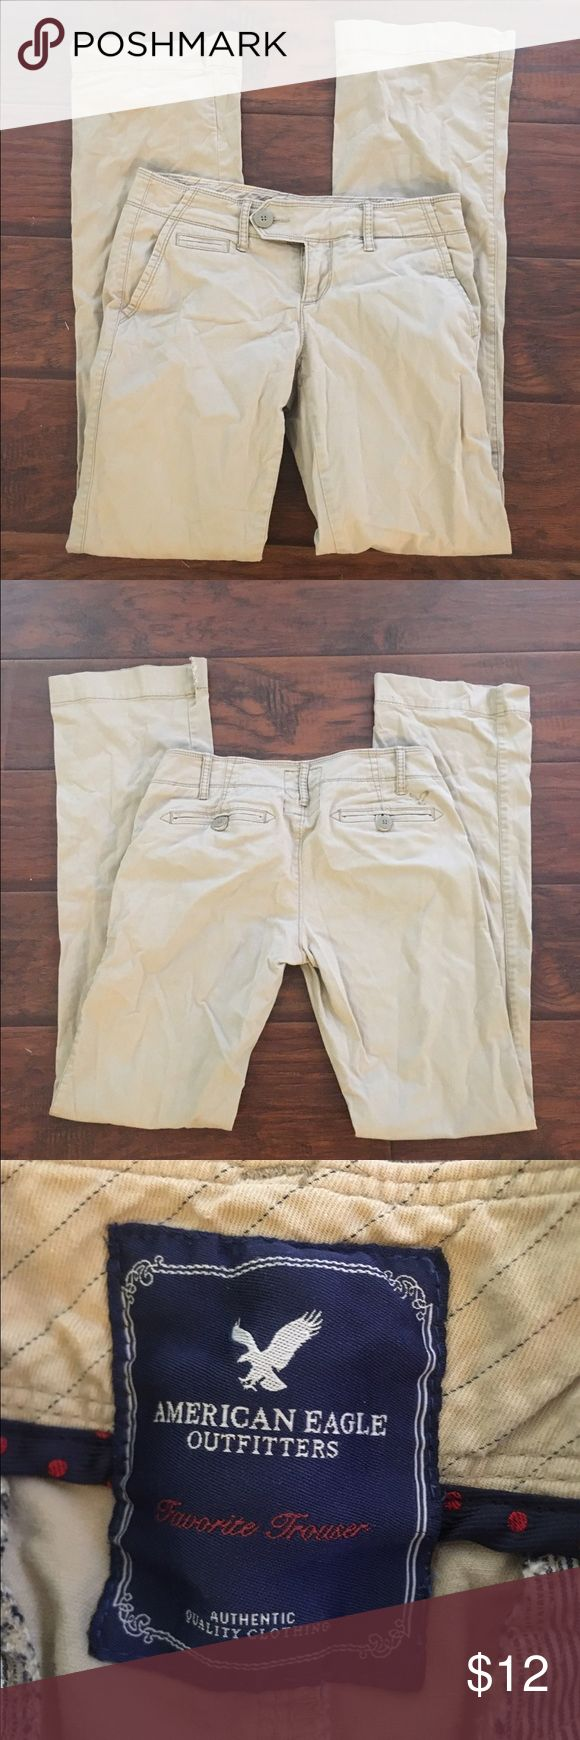 """American Eagle khaki trouser pants In excellent condition except for small slots at each ankle so they will fit over your boots. Priced accordingly. These are perfect otherwise! They are the """"favorite trouser."""" 98% cotton. Thanks for looking.💕 American Eagle Outfitters Pants Trousers"""